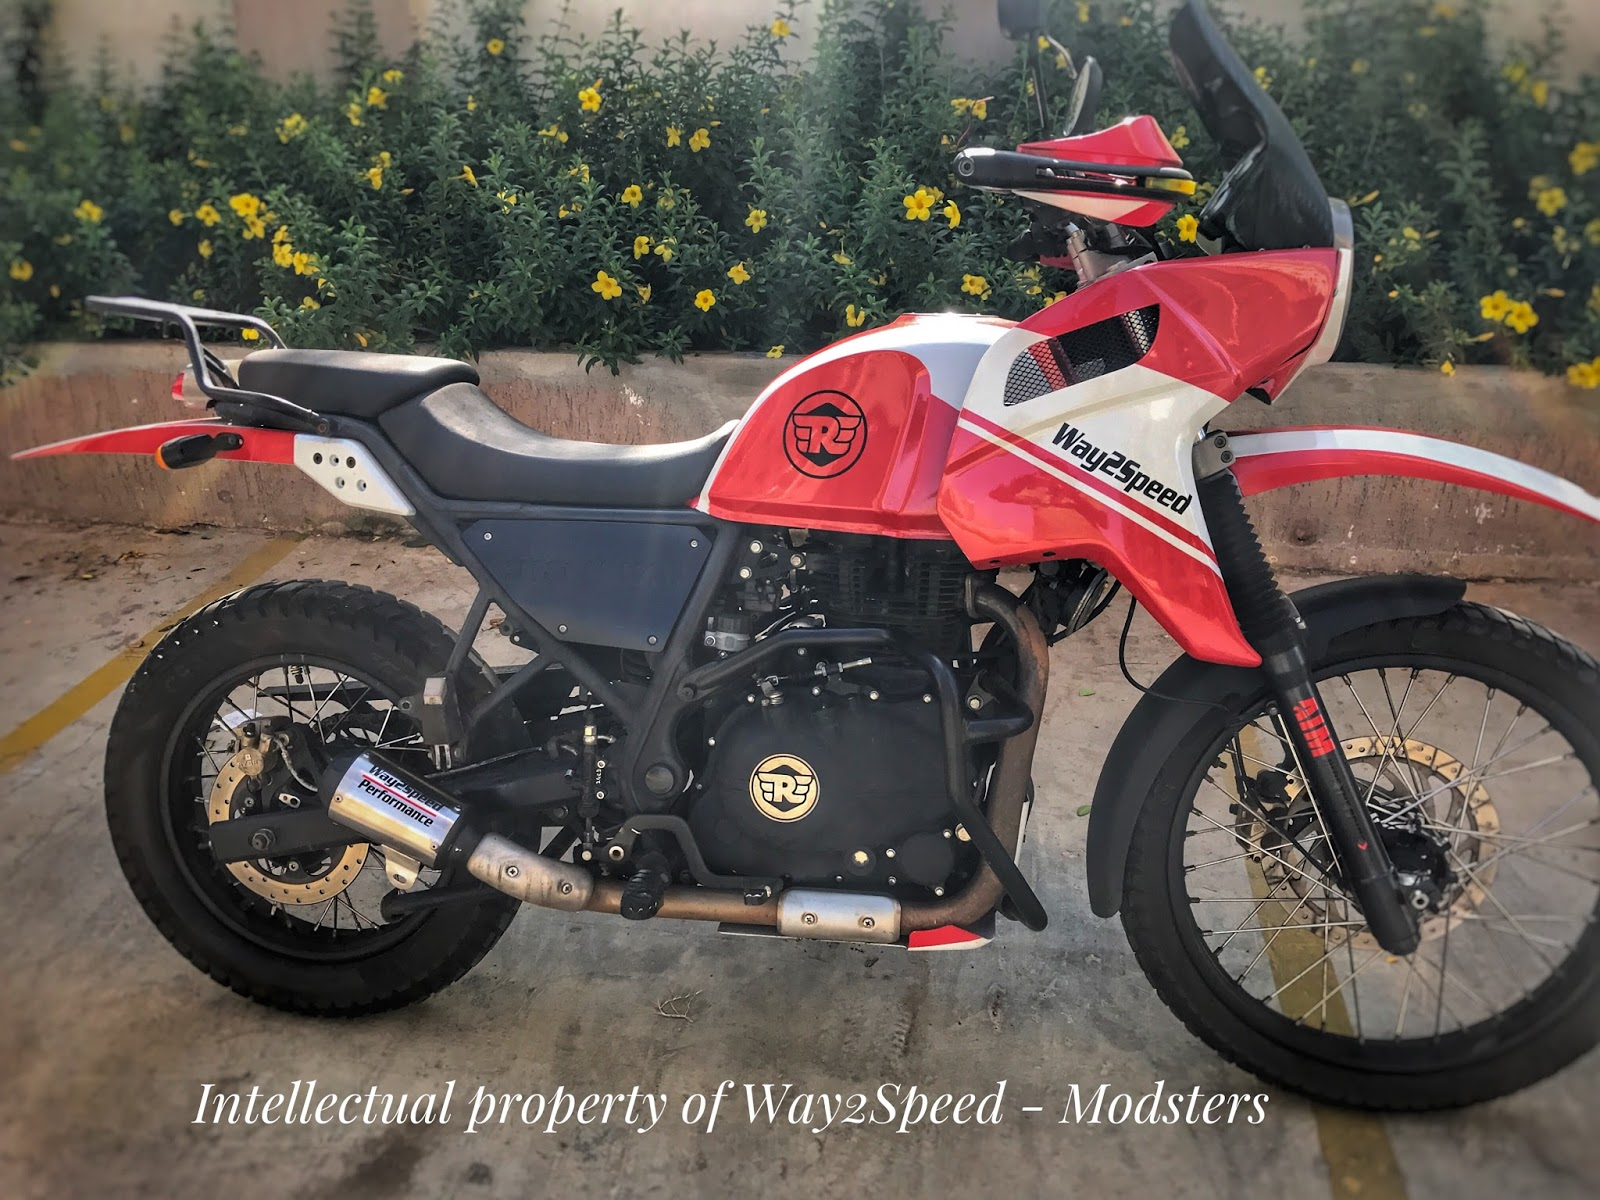 Custom Royal Enfield Himalayan Dual Sport By Way2Speed Performance | MODIFIED Royal Enfield Himalayans | custom royal enfield himalayan | royal enfield himalayan modified images | re himalayan modifications | royal enfield himalayan modified exhaust | himalayan modified | royal enfield himalayan modifications